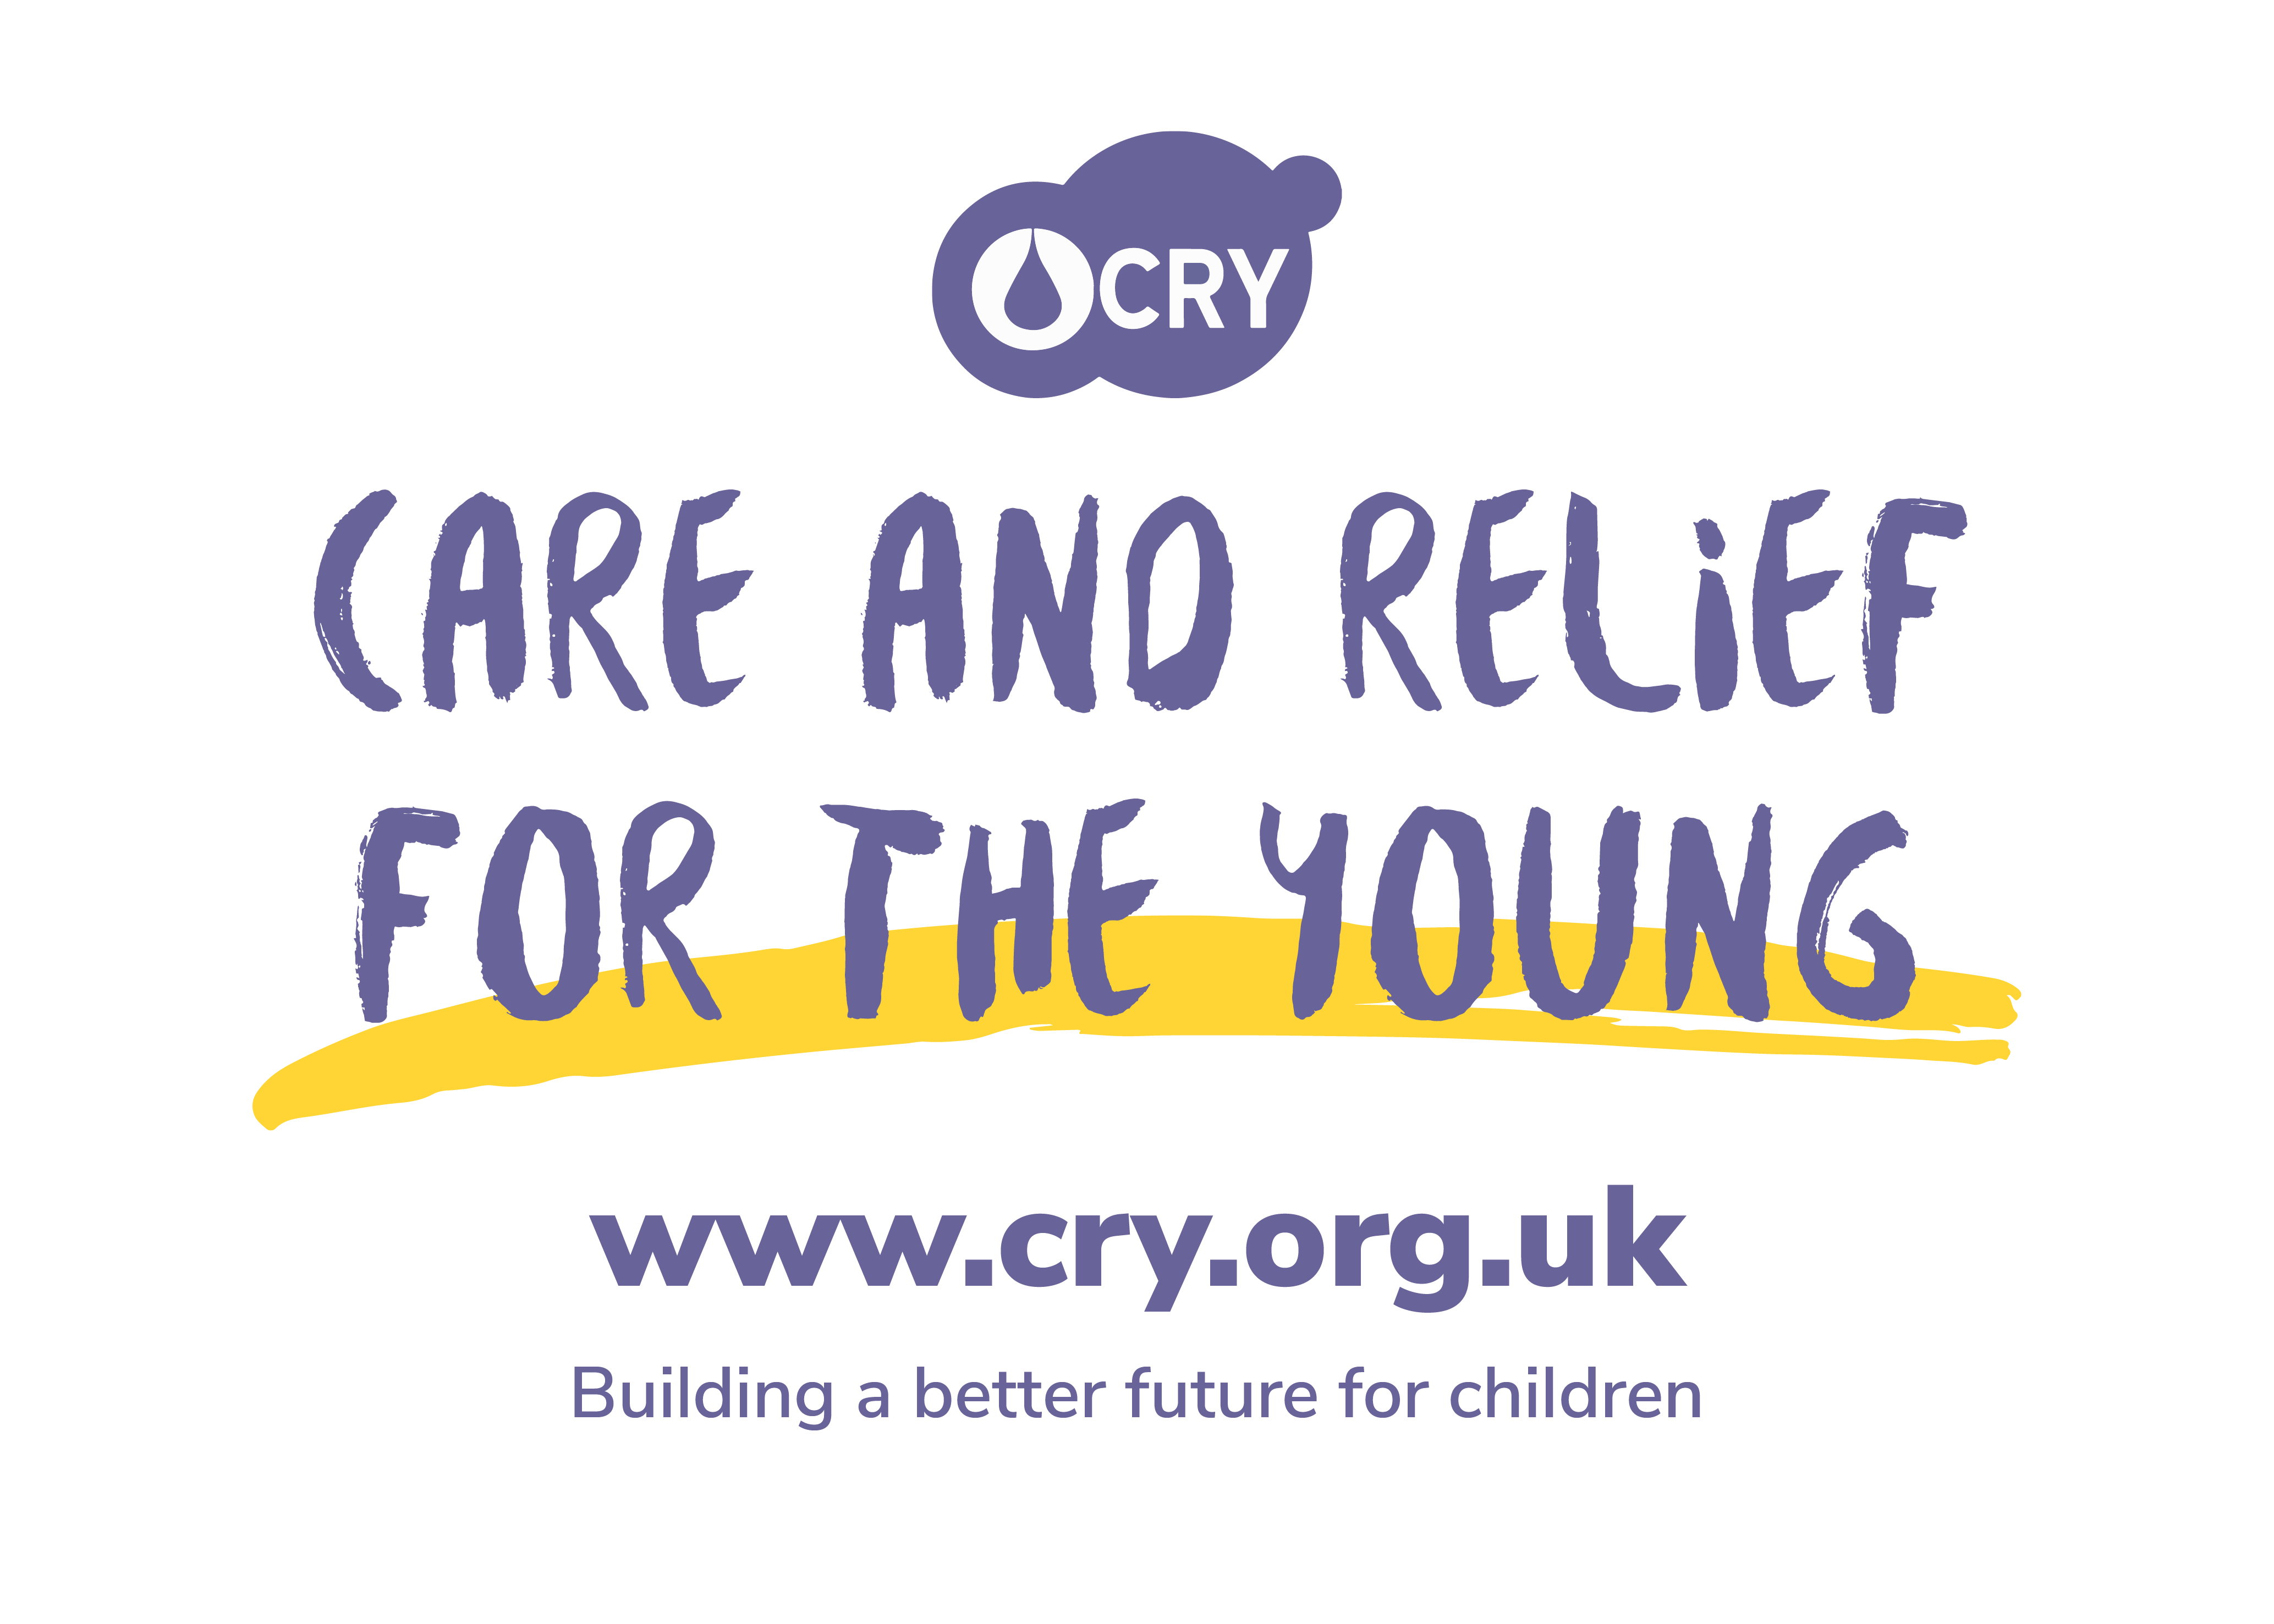 CARE AND RELIEF FOR THE YOUNG